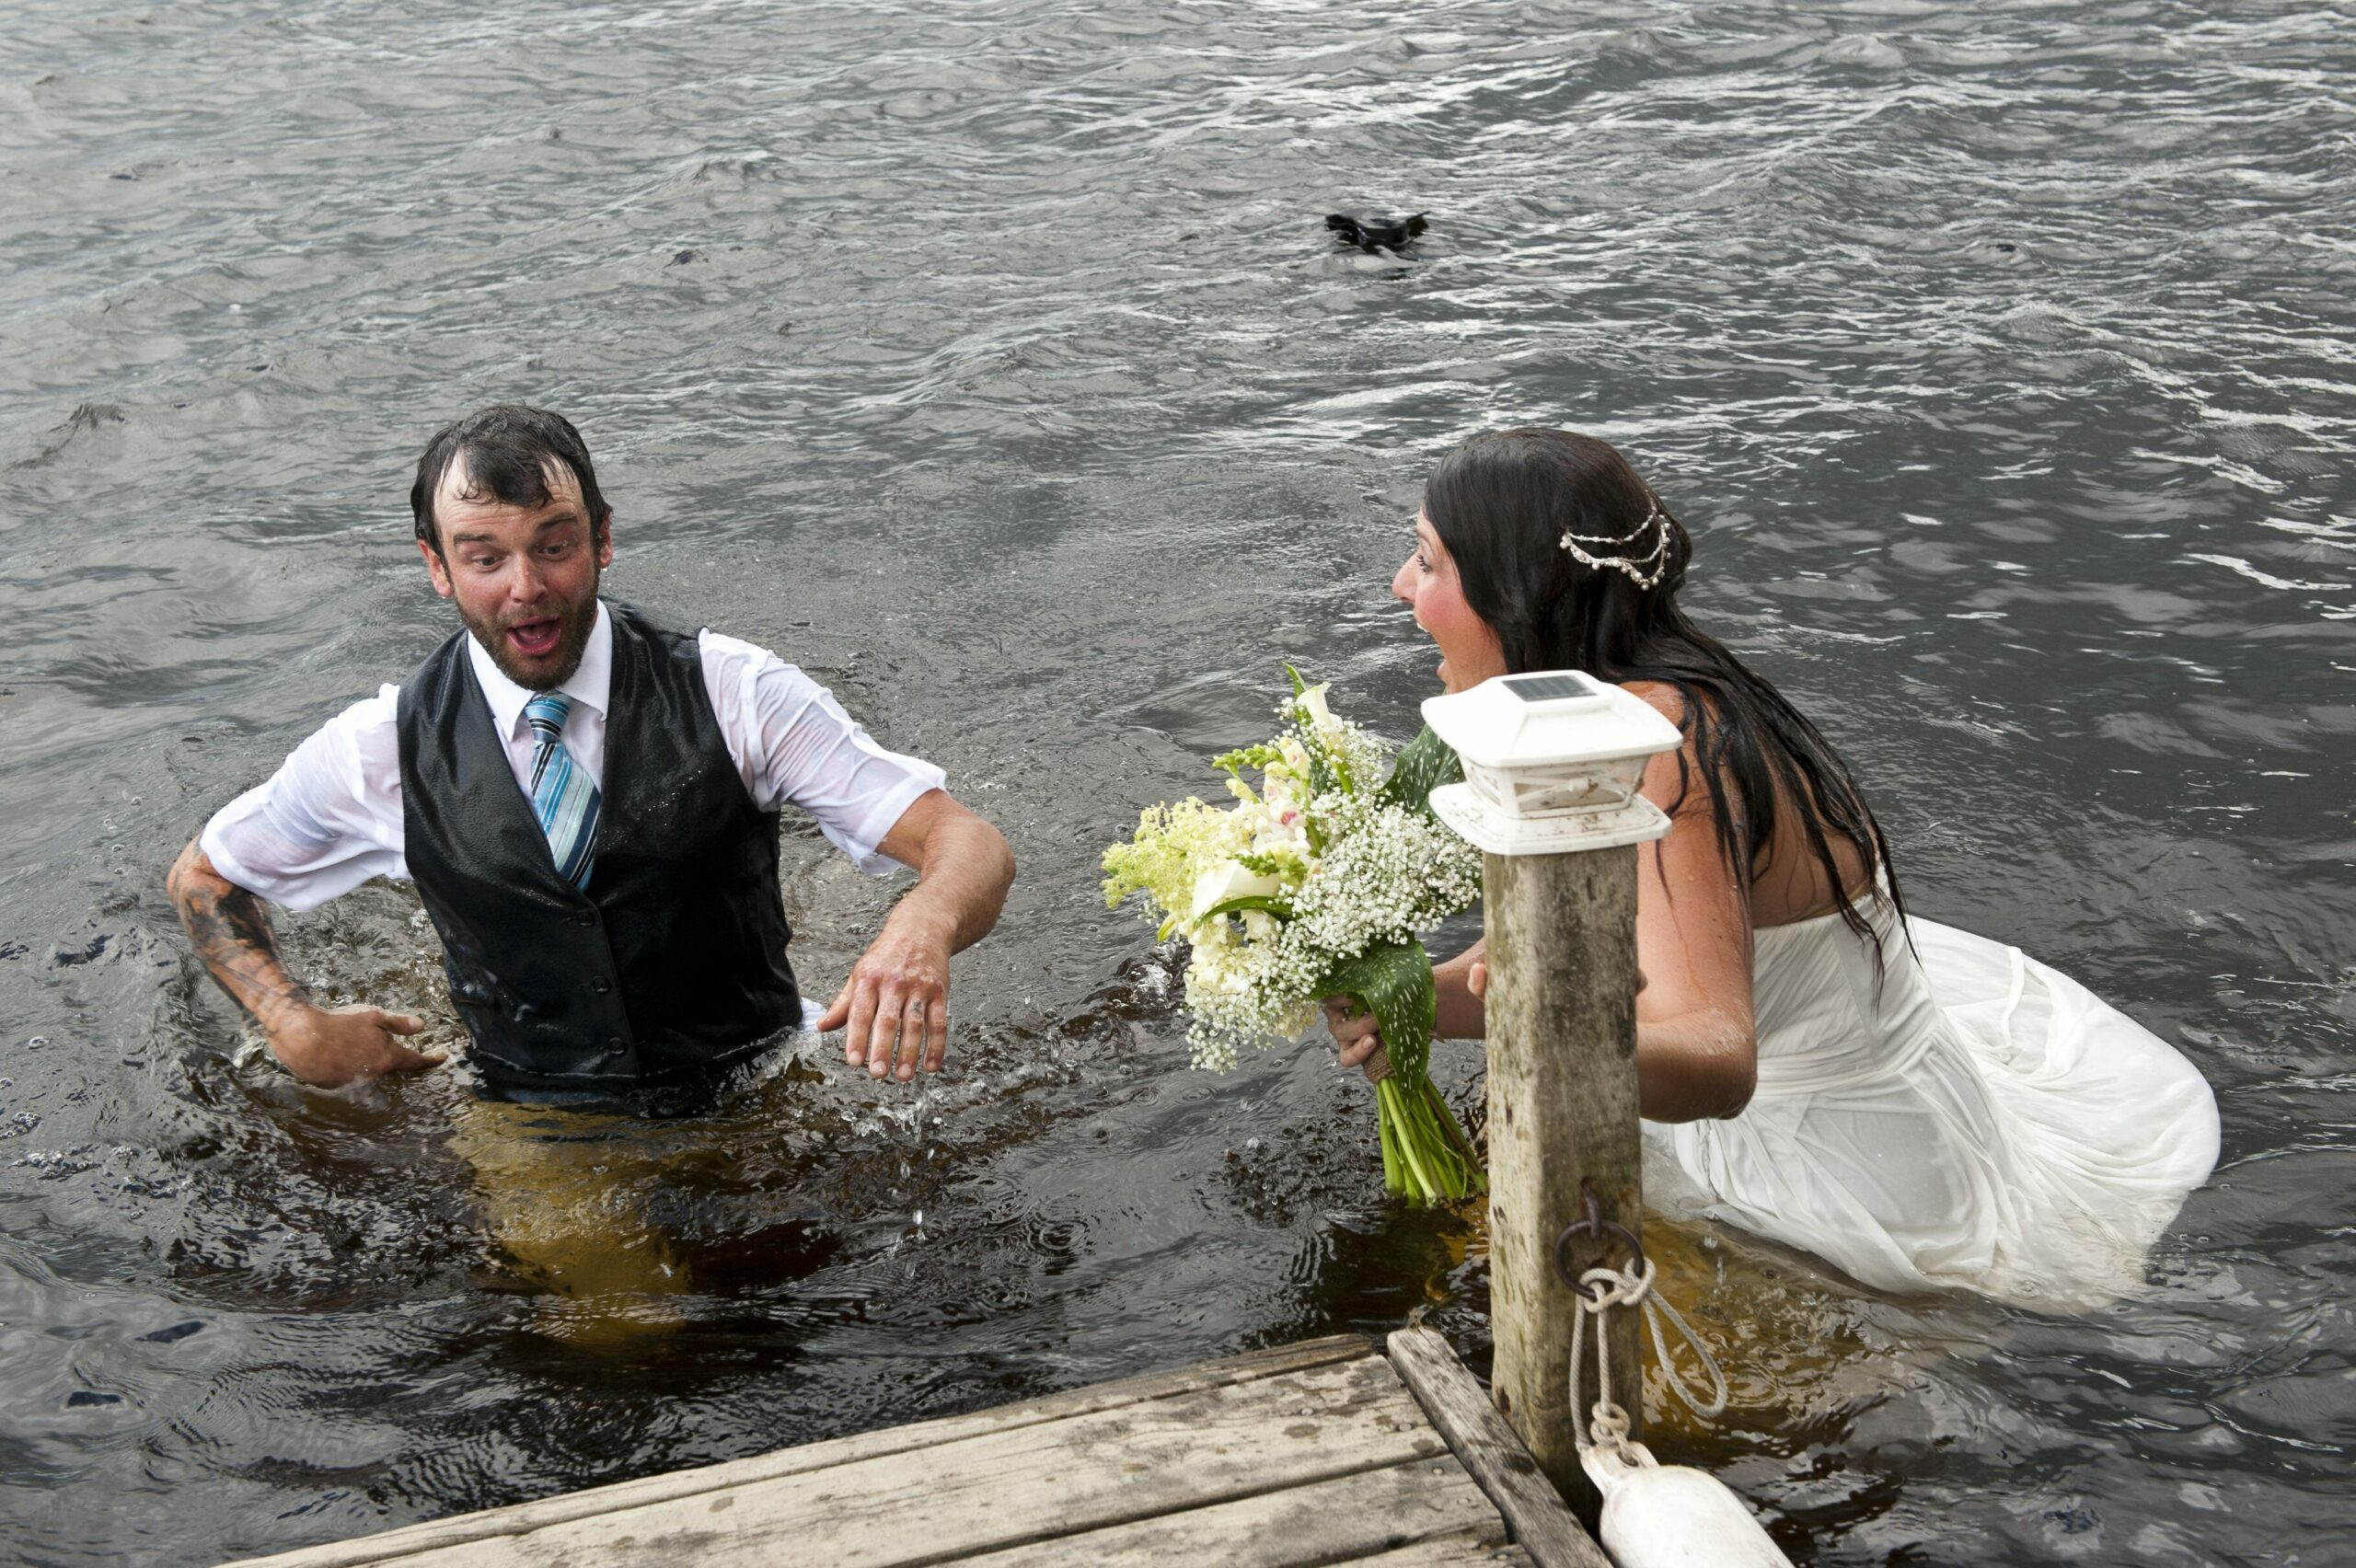 Bride, groom fall into river during wedding photos while attempting 'romantic' dance move